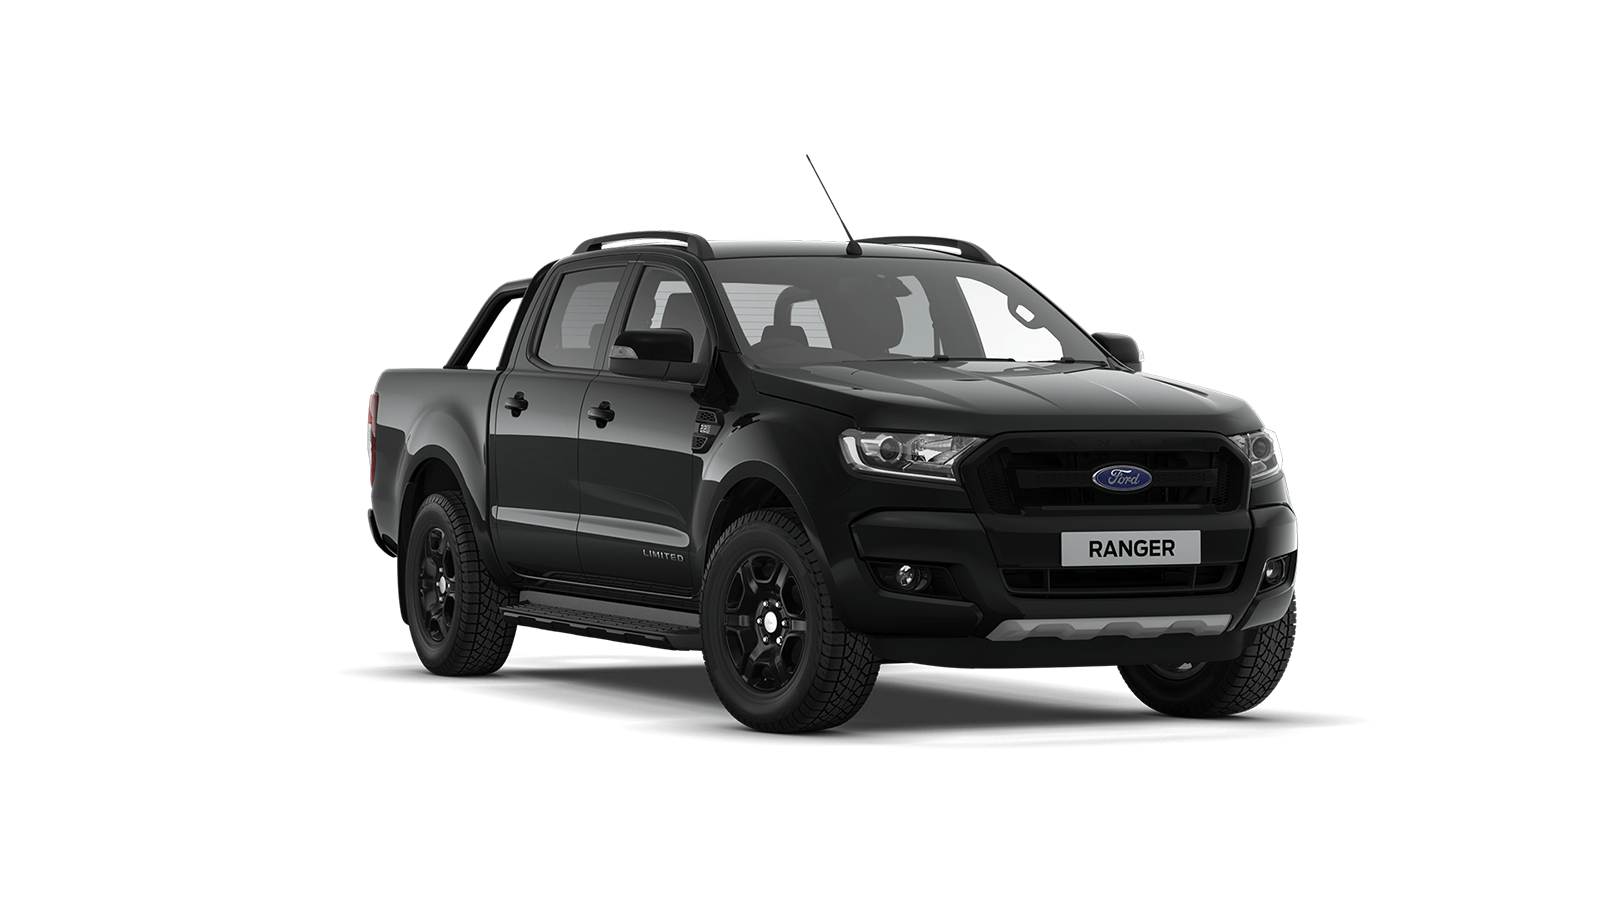 Ford Ranger at Balmoral Garage